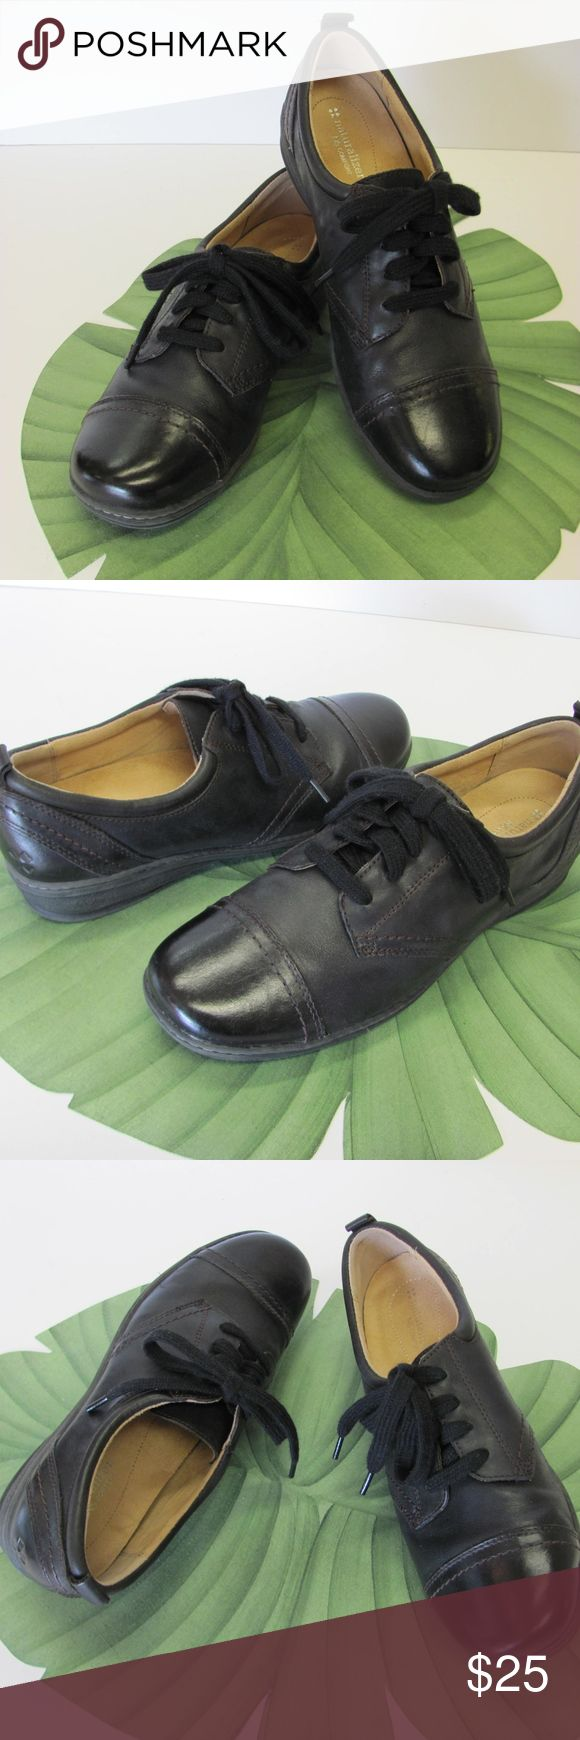 COMFORTABLE LOOKING NATURALIZER BLACK FLATS I usually ship in 24 to 48 hours.  Great Looking lace up Black Leather Shoes.  Designed by Naturalizer.  Padded footbed.  Size 9.50 M.  Hardly Worn.  Very Good Condition. Naturalizer Shoes Flats & Loafers